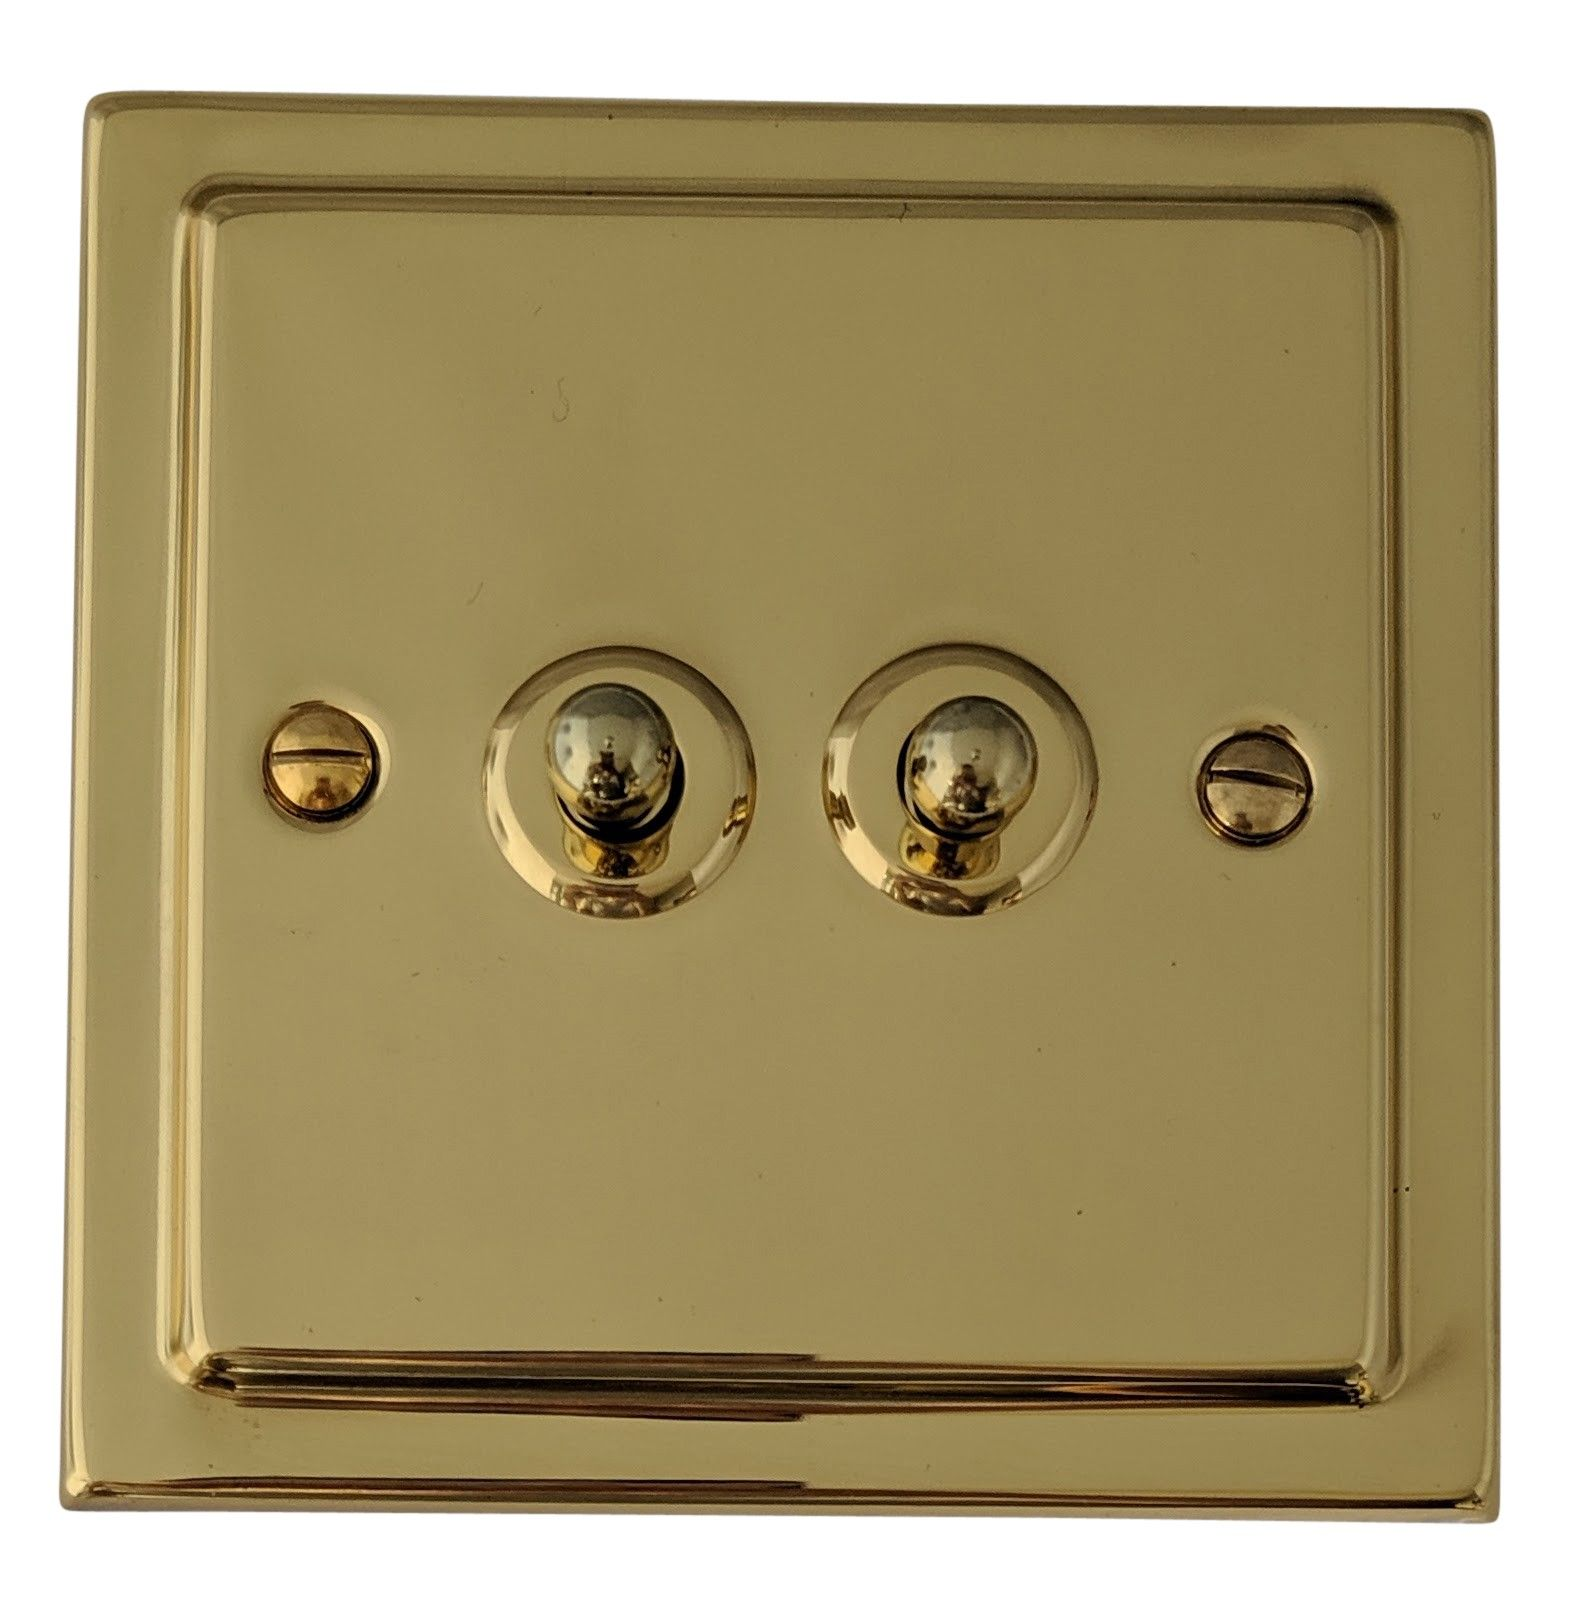 G Amp H Tb282 Trimline Victorian Polished Brass 2 Gang 1 Or 2